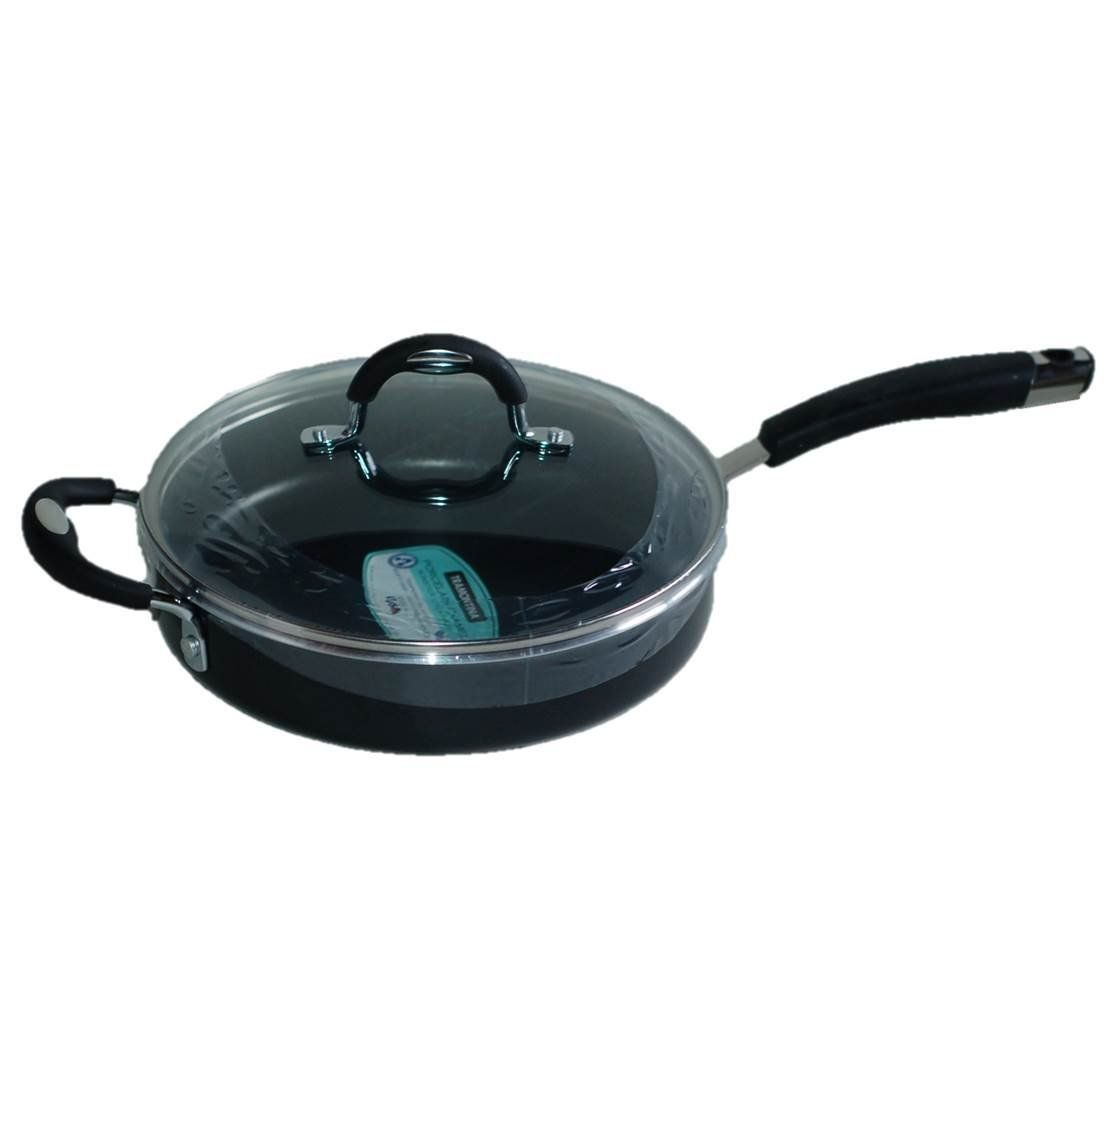 Tramontina 10 Inch Non Stick Skillet Frying Pan With Tempered Glass Lid Black Porcelain Enamel Check Out This Great Image Frying Pan Tempered Glass Pans